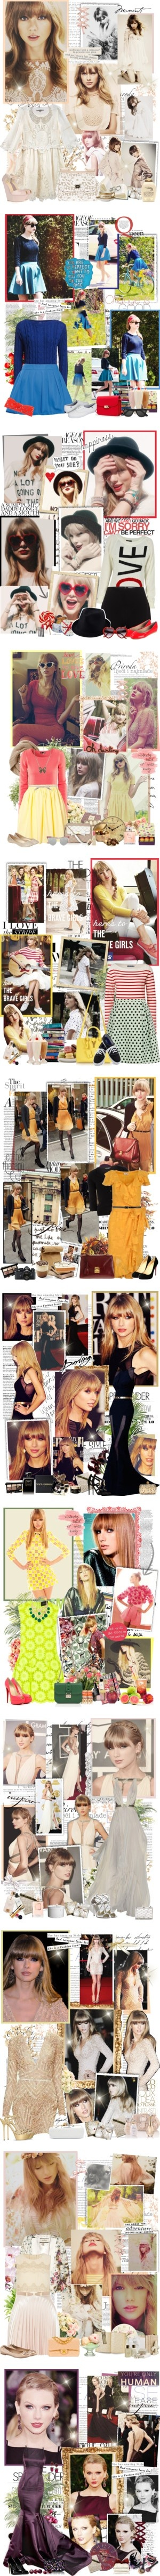 """Taylor Swift style"" by mery90 ❤ liked on Polyvore"